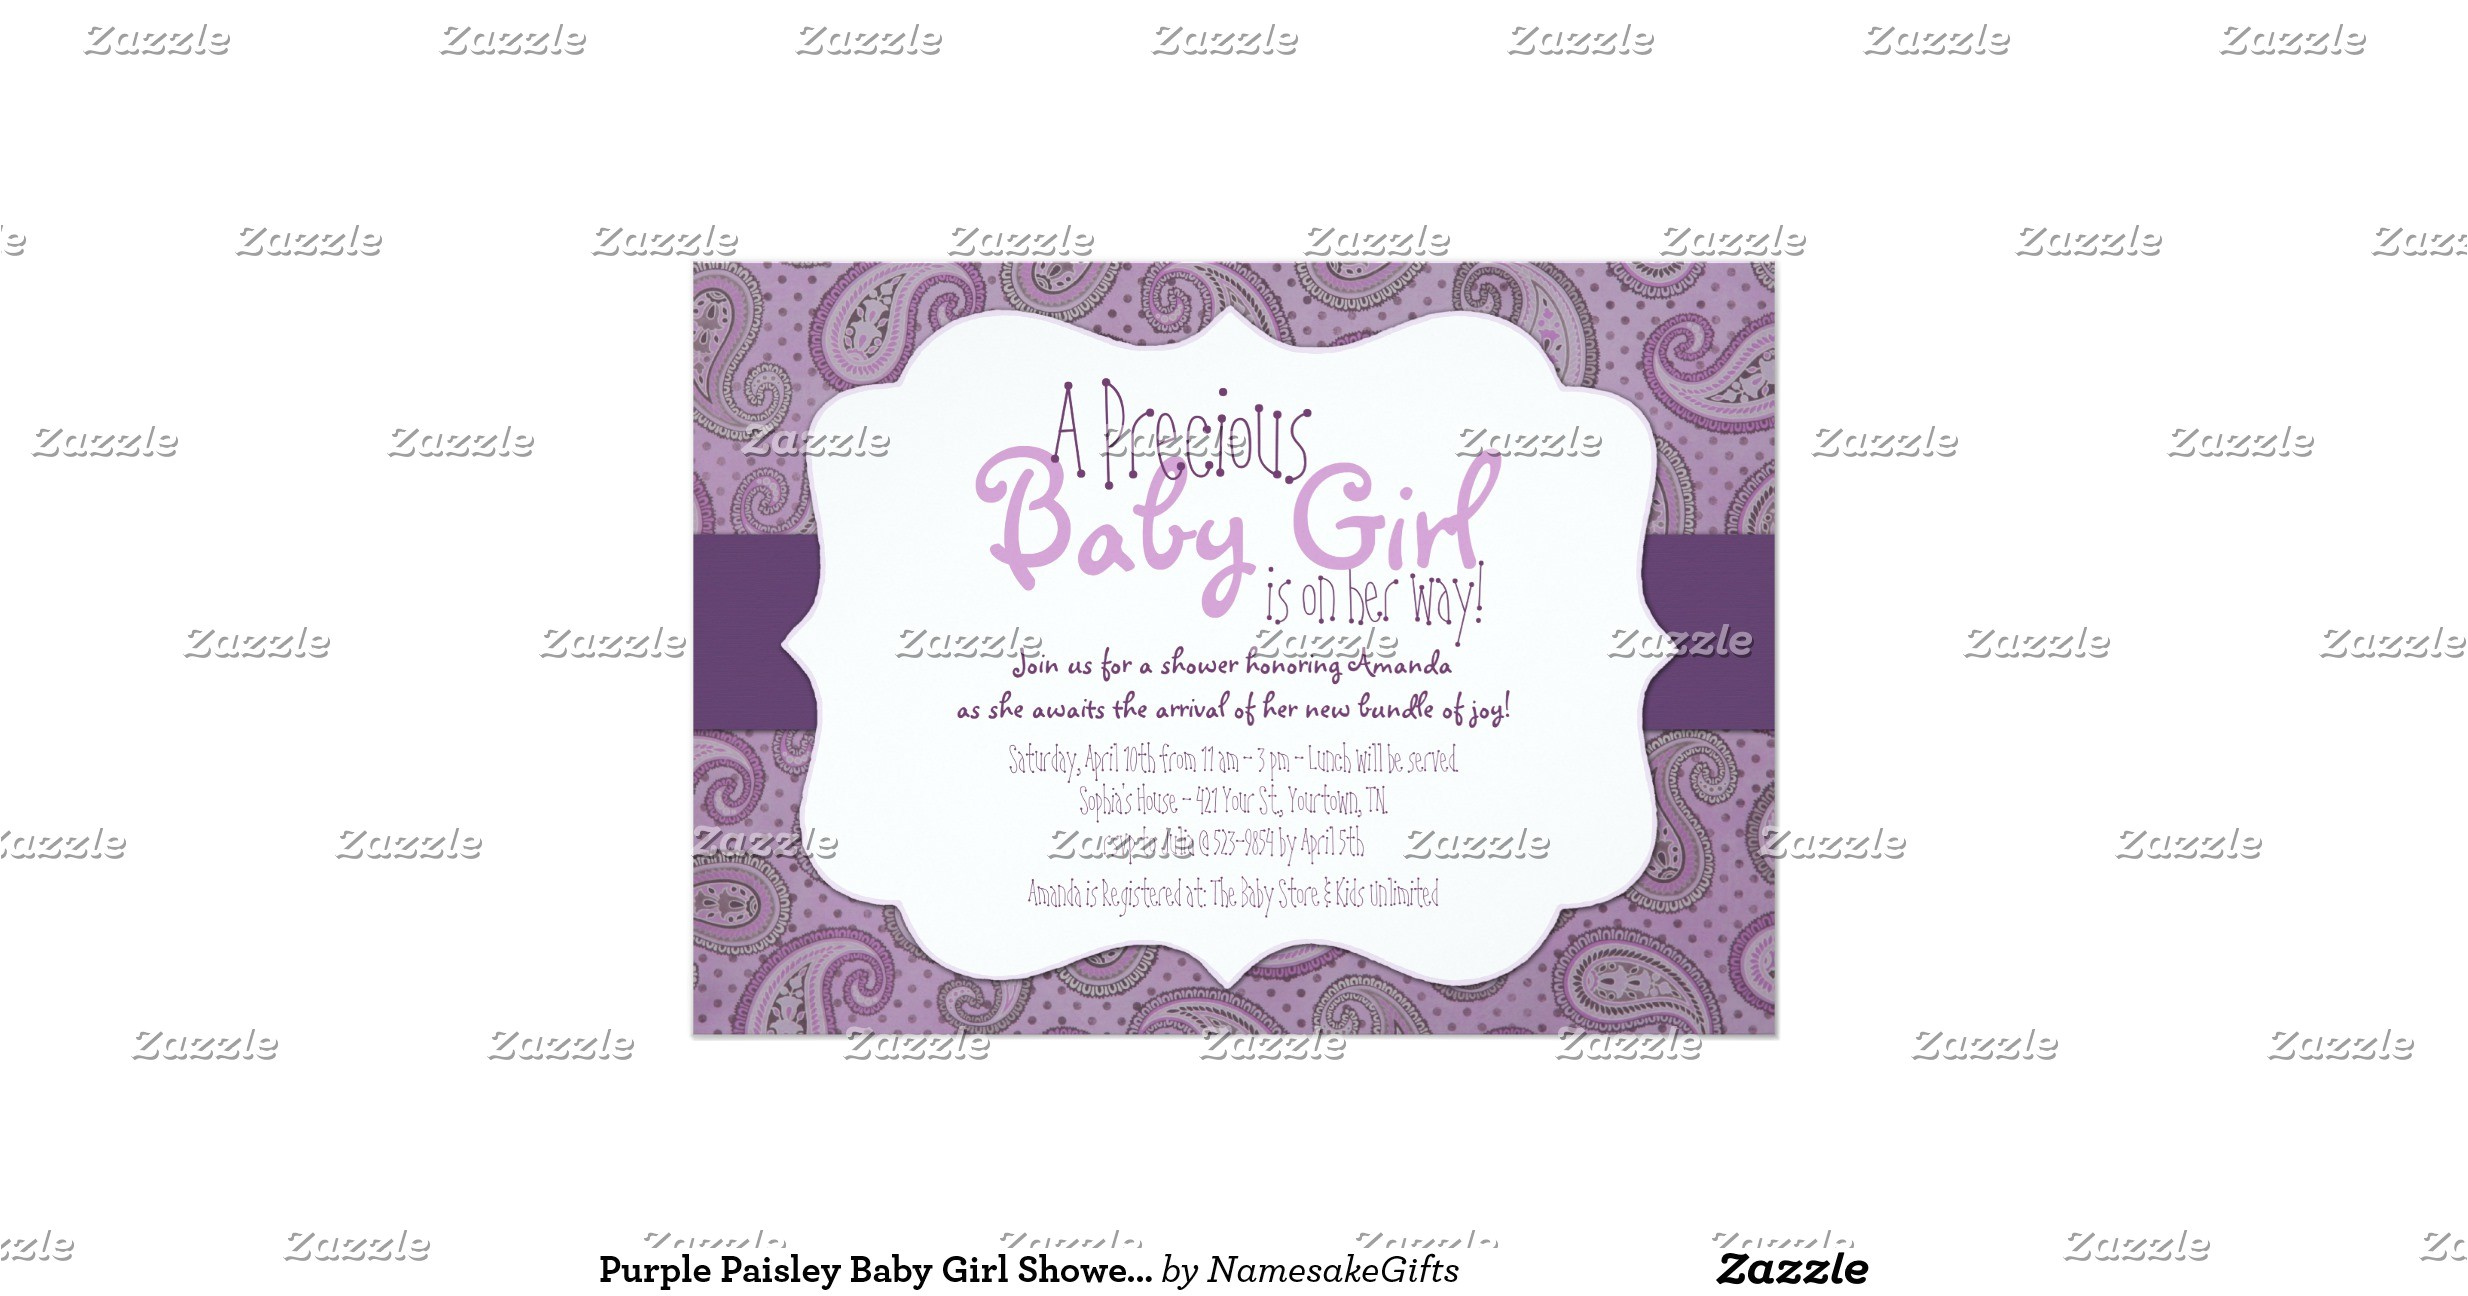 purple paisley baby girl shower invitation